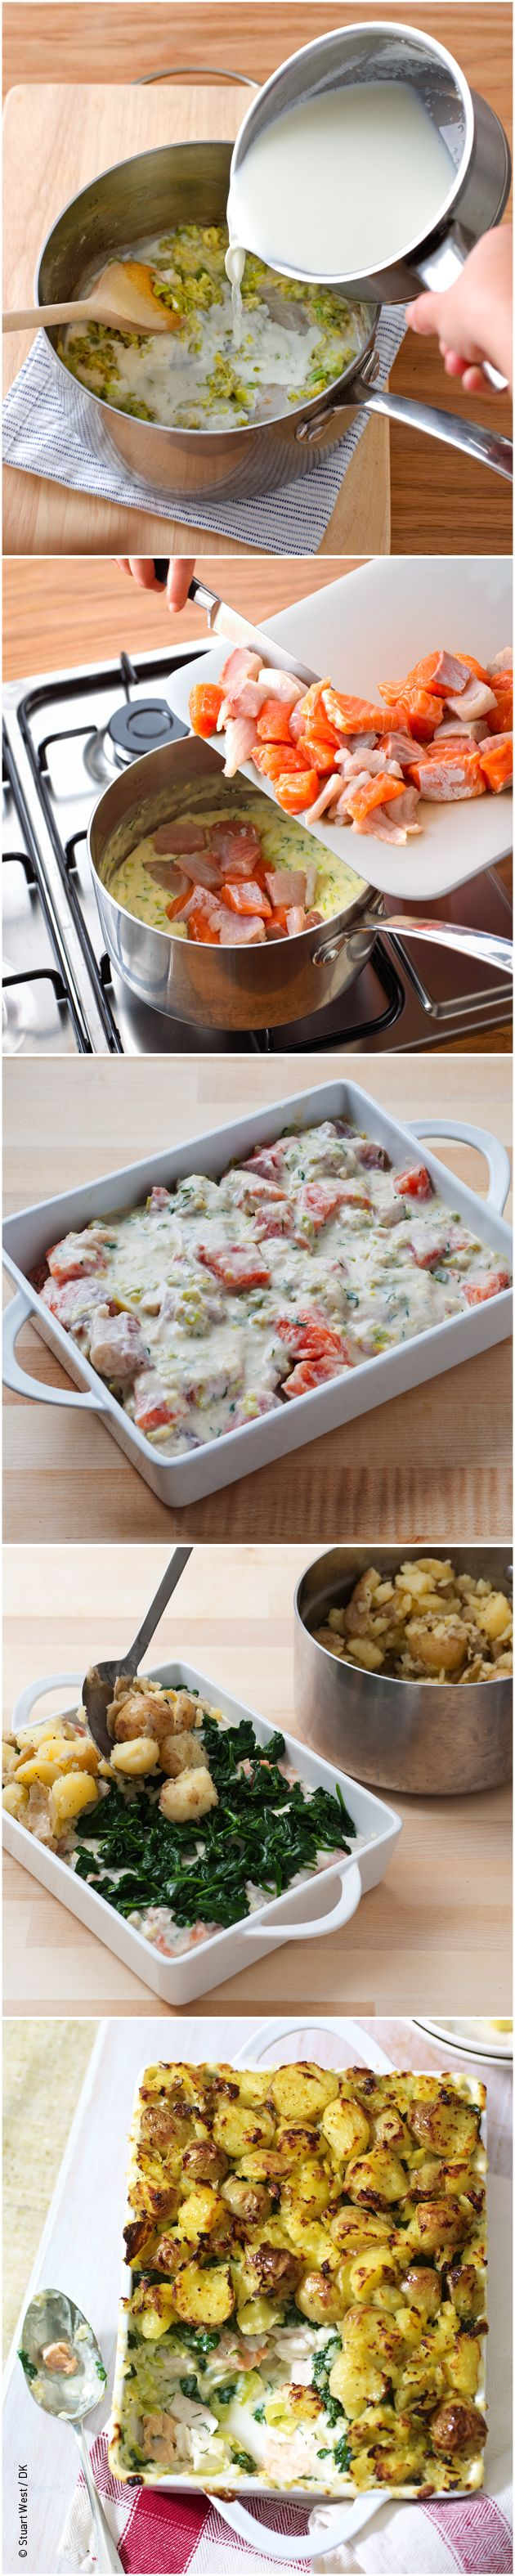 Recipe for fish pie with crushed potato topping from Mary Berry